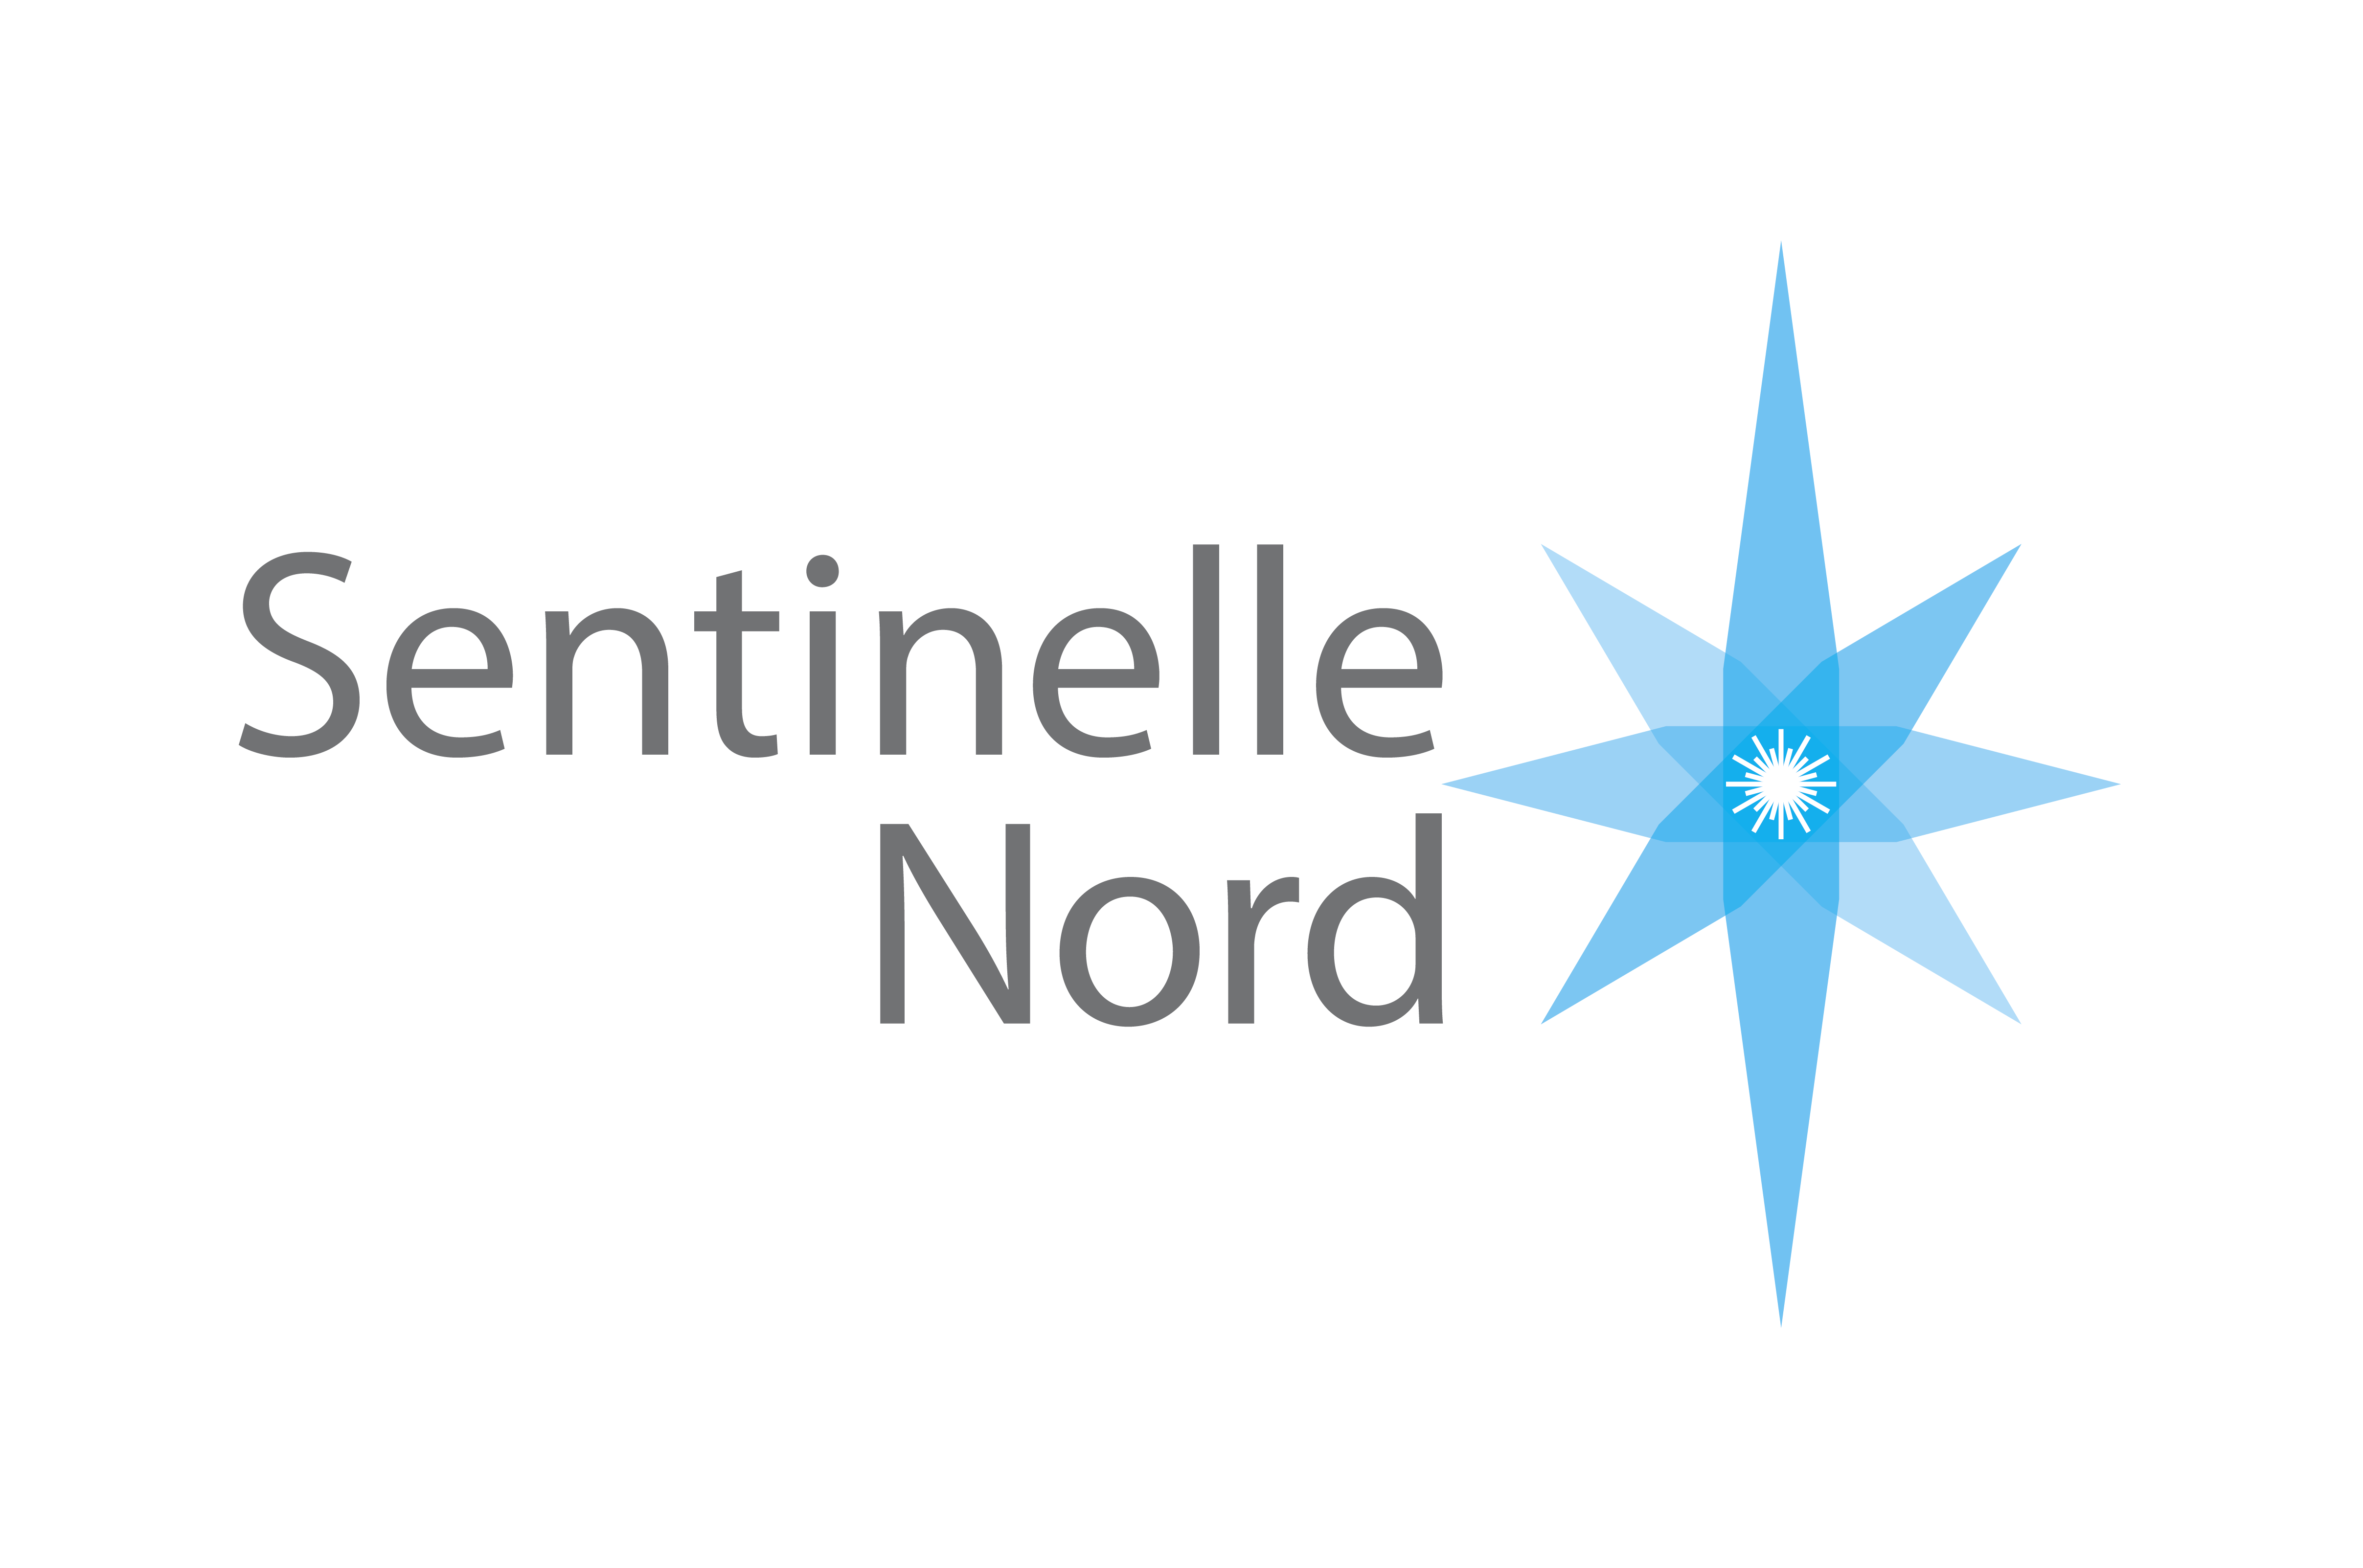 Sentinelle nord